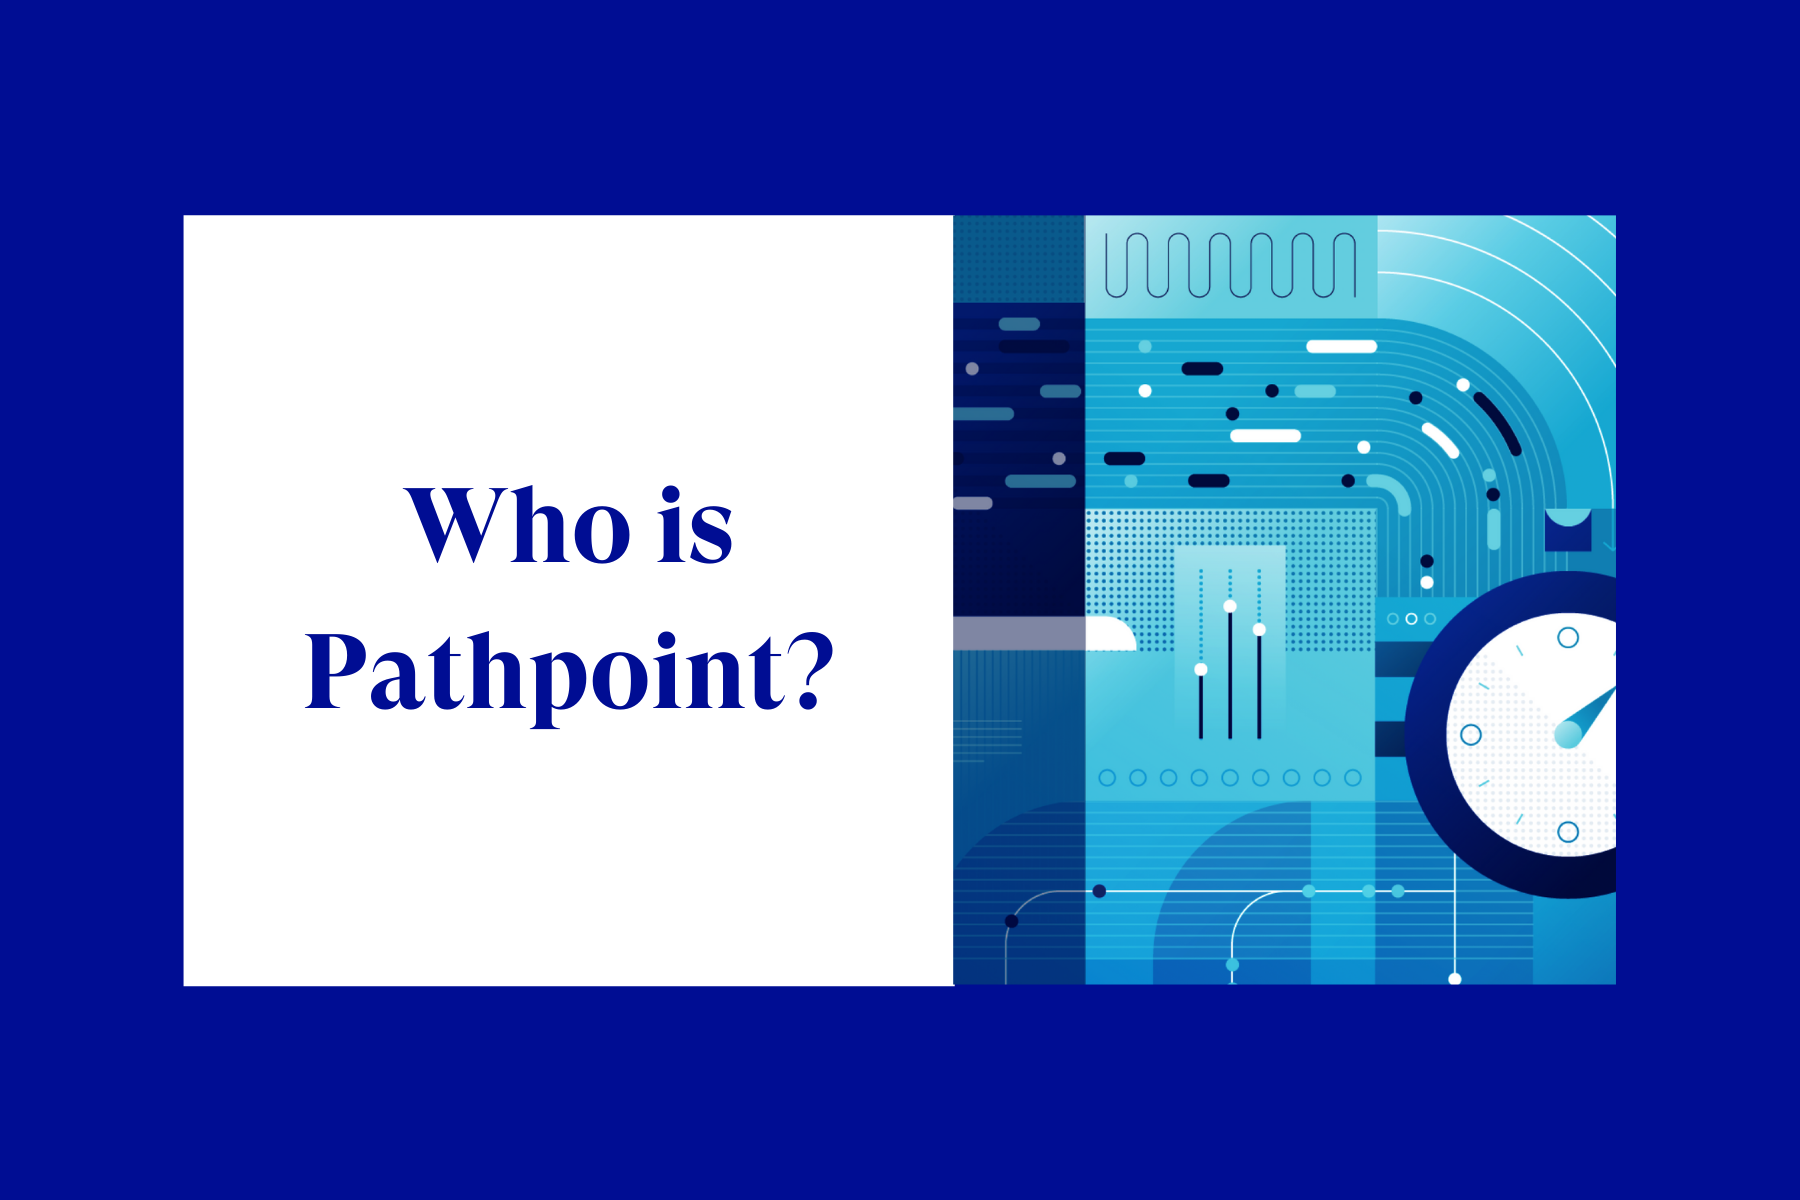 Who Is Pathpoint?